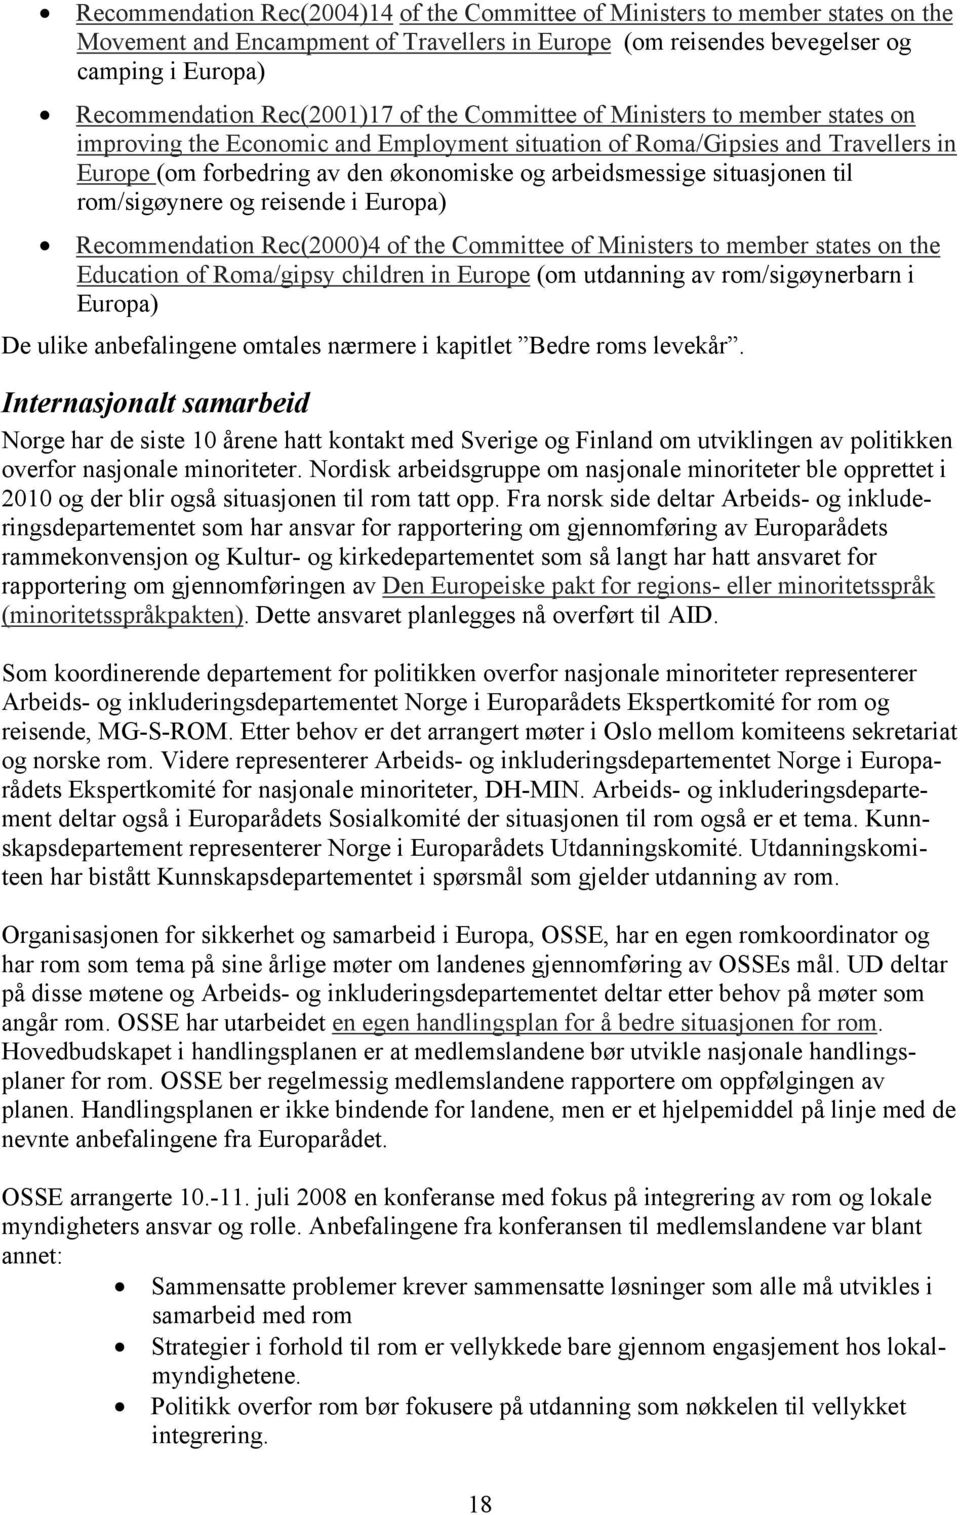 arbeidsmessige situasjonen til rom/sigøynere og reisende i Europa) Recommendation Rec(2000)4 of the Committee of Ministers to member states on the Education of Roma/gipsy children in Europe (om